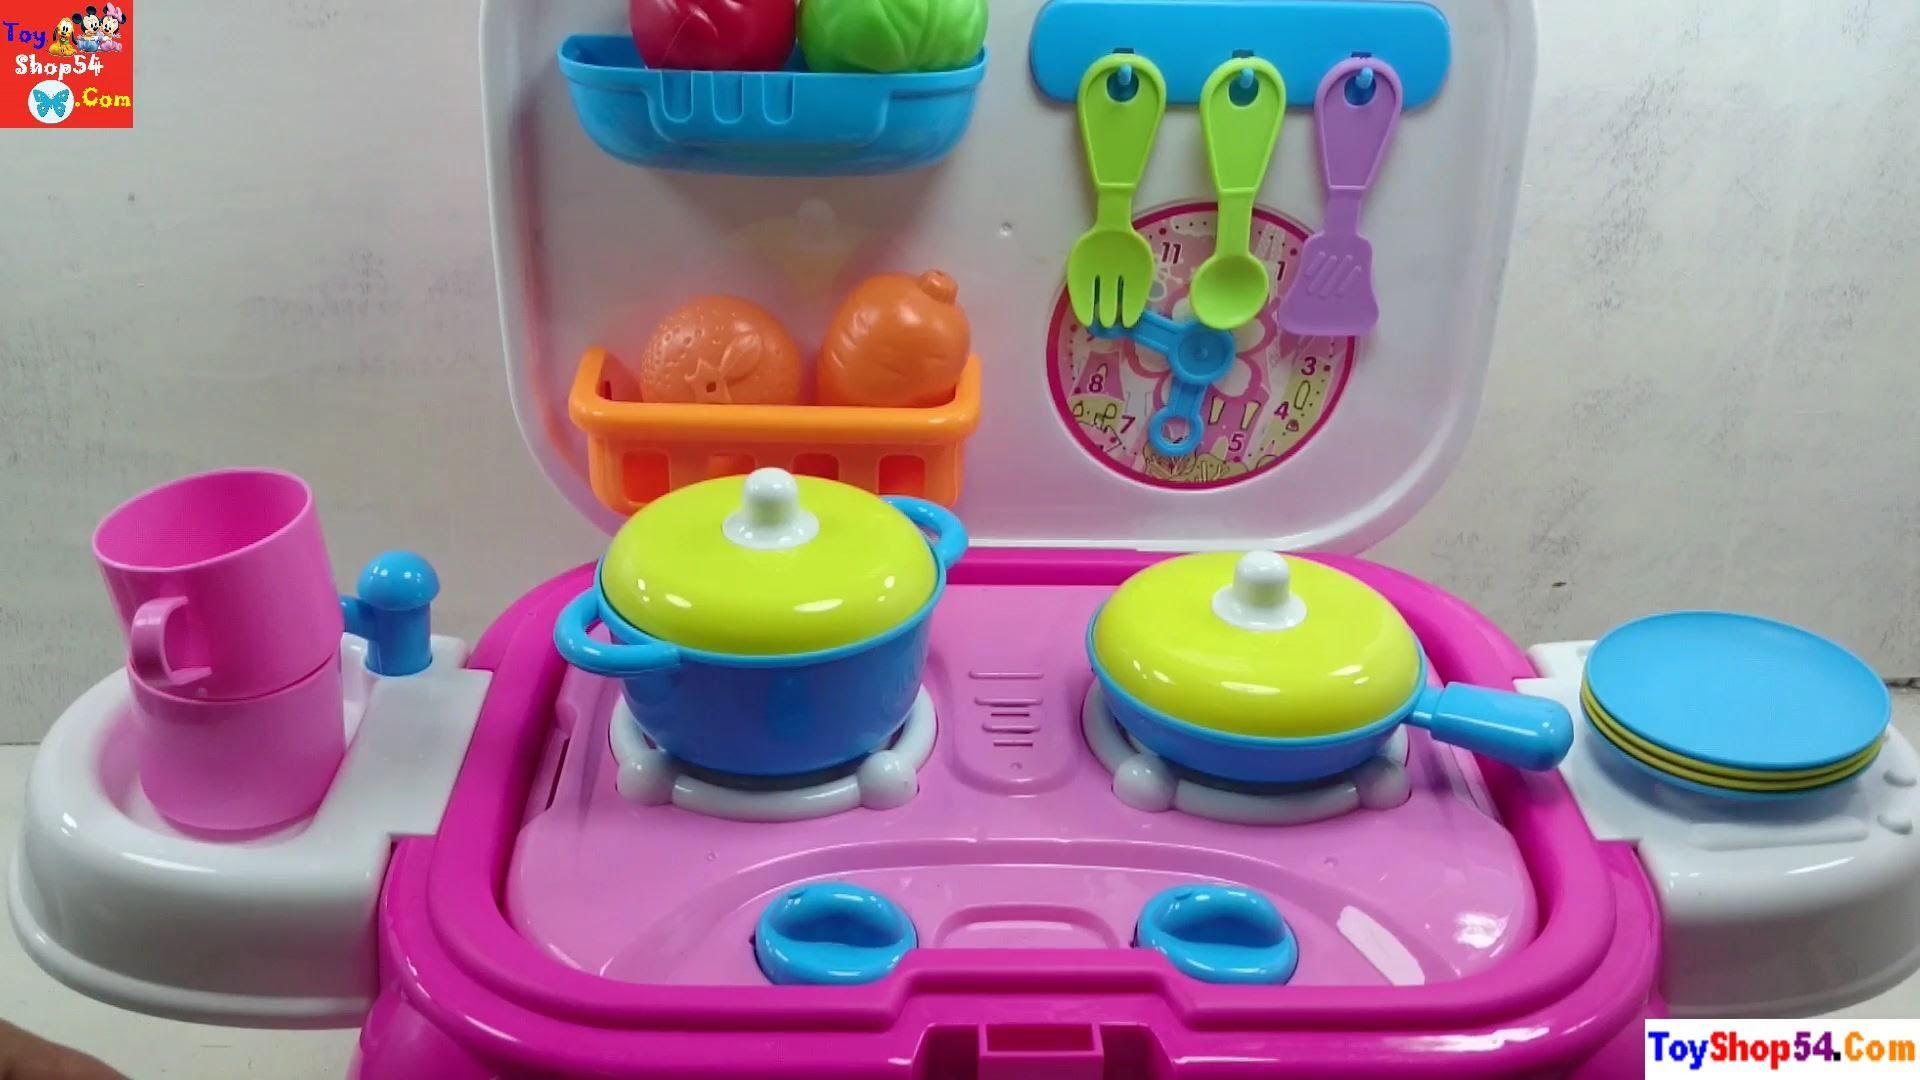 Toys for kids kitchen set  Đồ chơi nhà bếp nấu ăn cho bé Toys kitchen Cooking for the baby